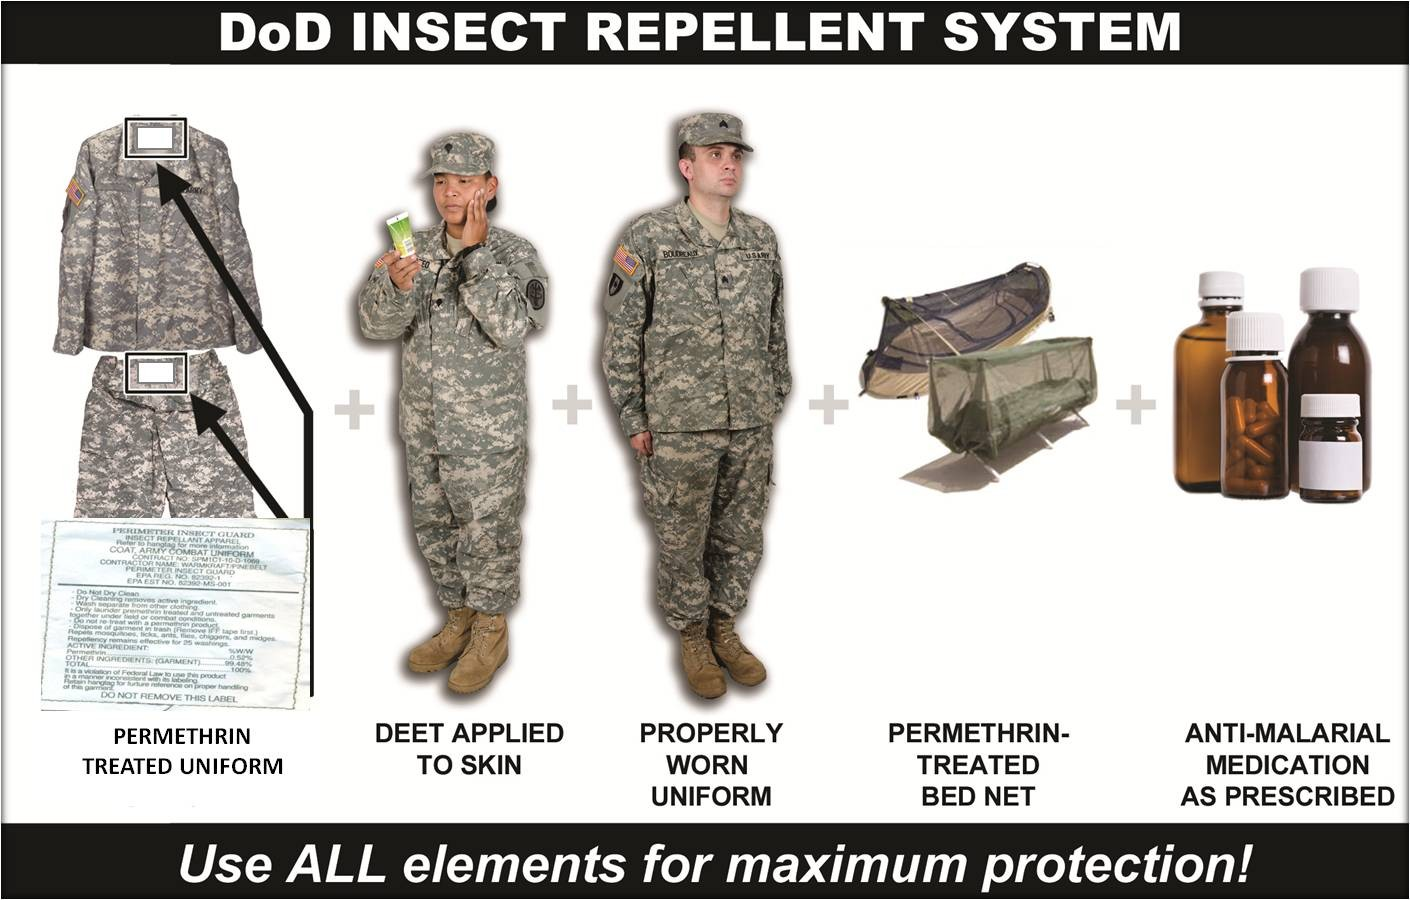 Permethrin Treated Uniforms Protect Against Lethal